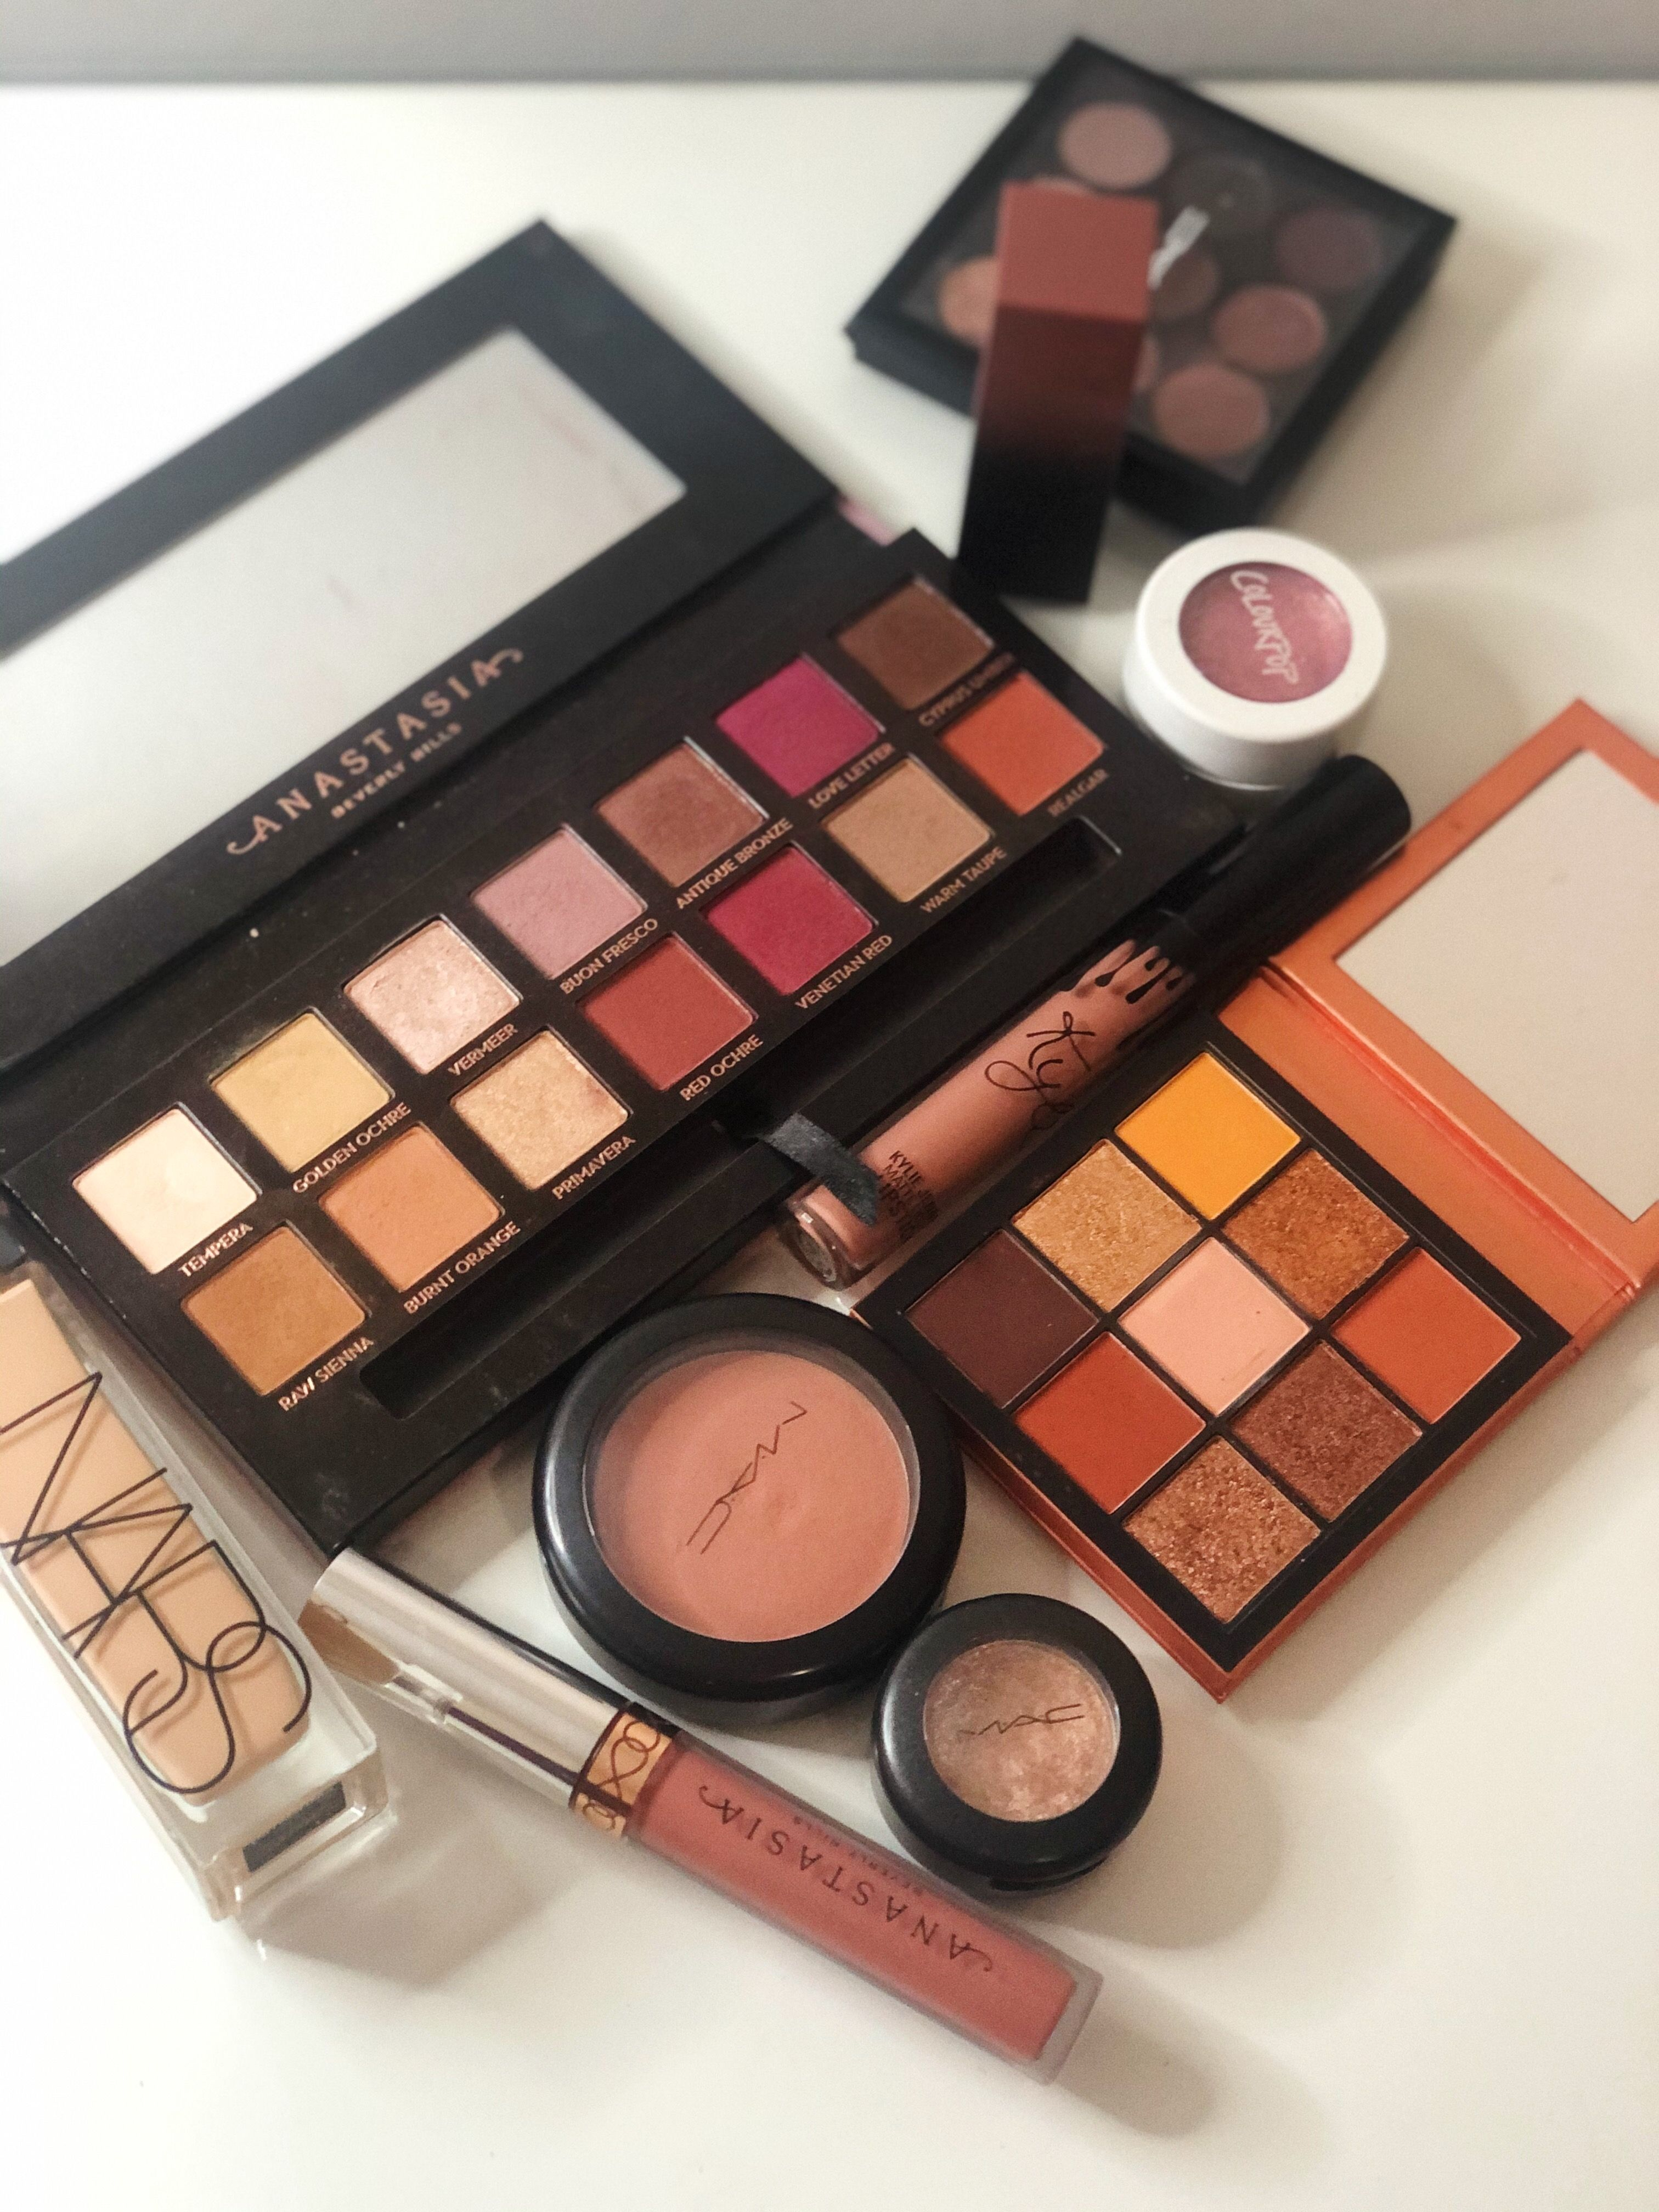 Pin By Beauty By Kay On Makeup In 2020 Makeup Eyeshadow Promo Codes Online